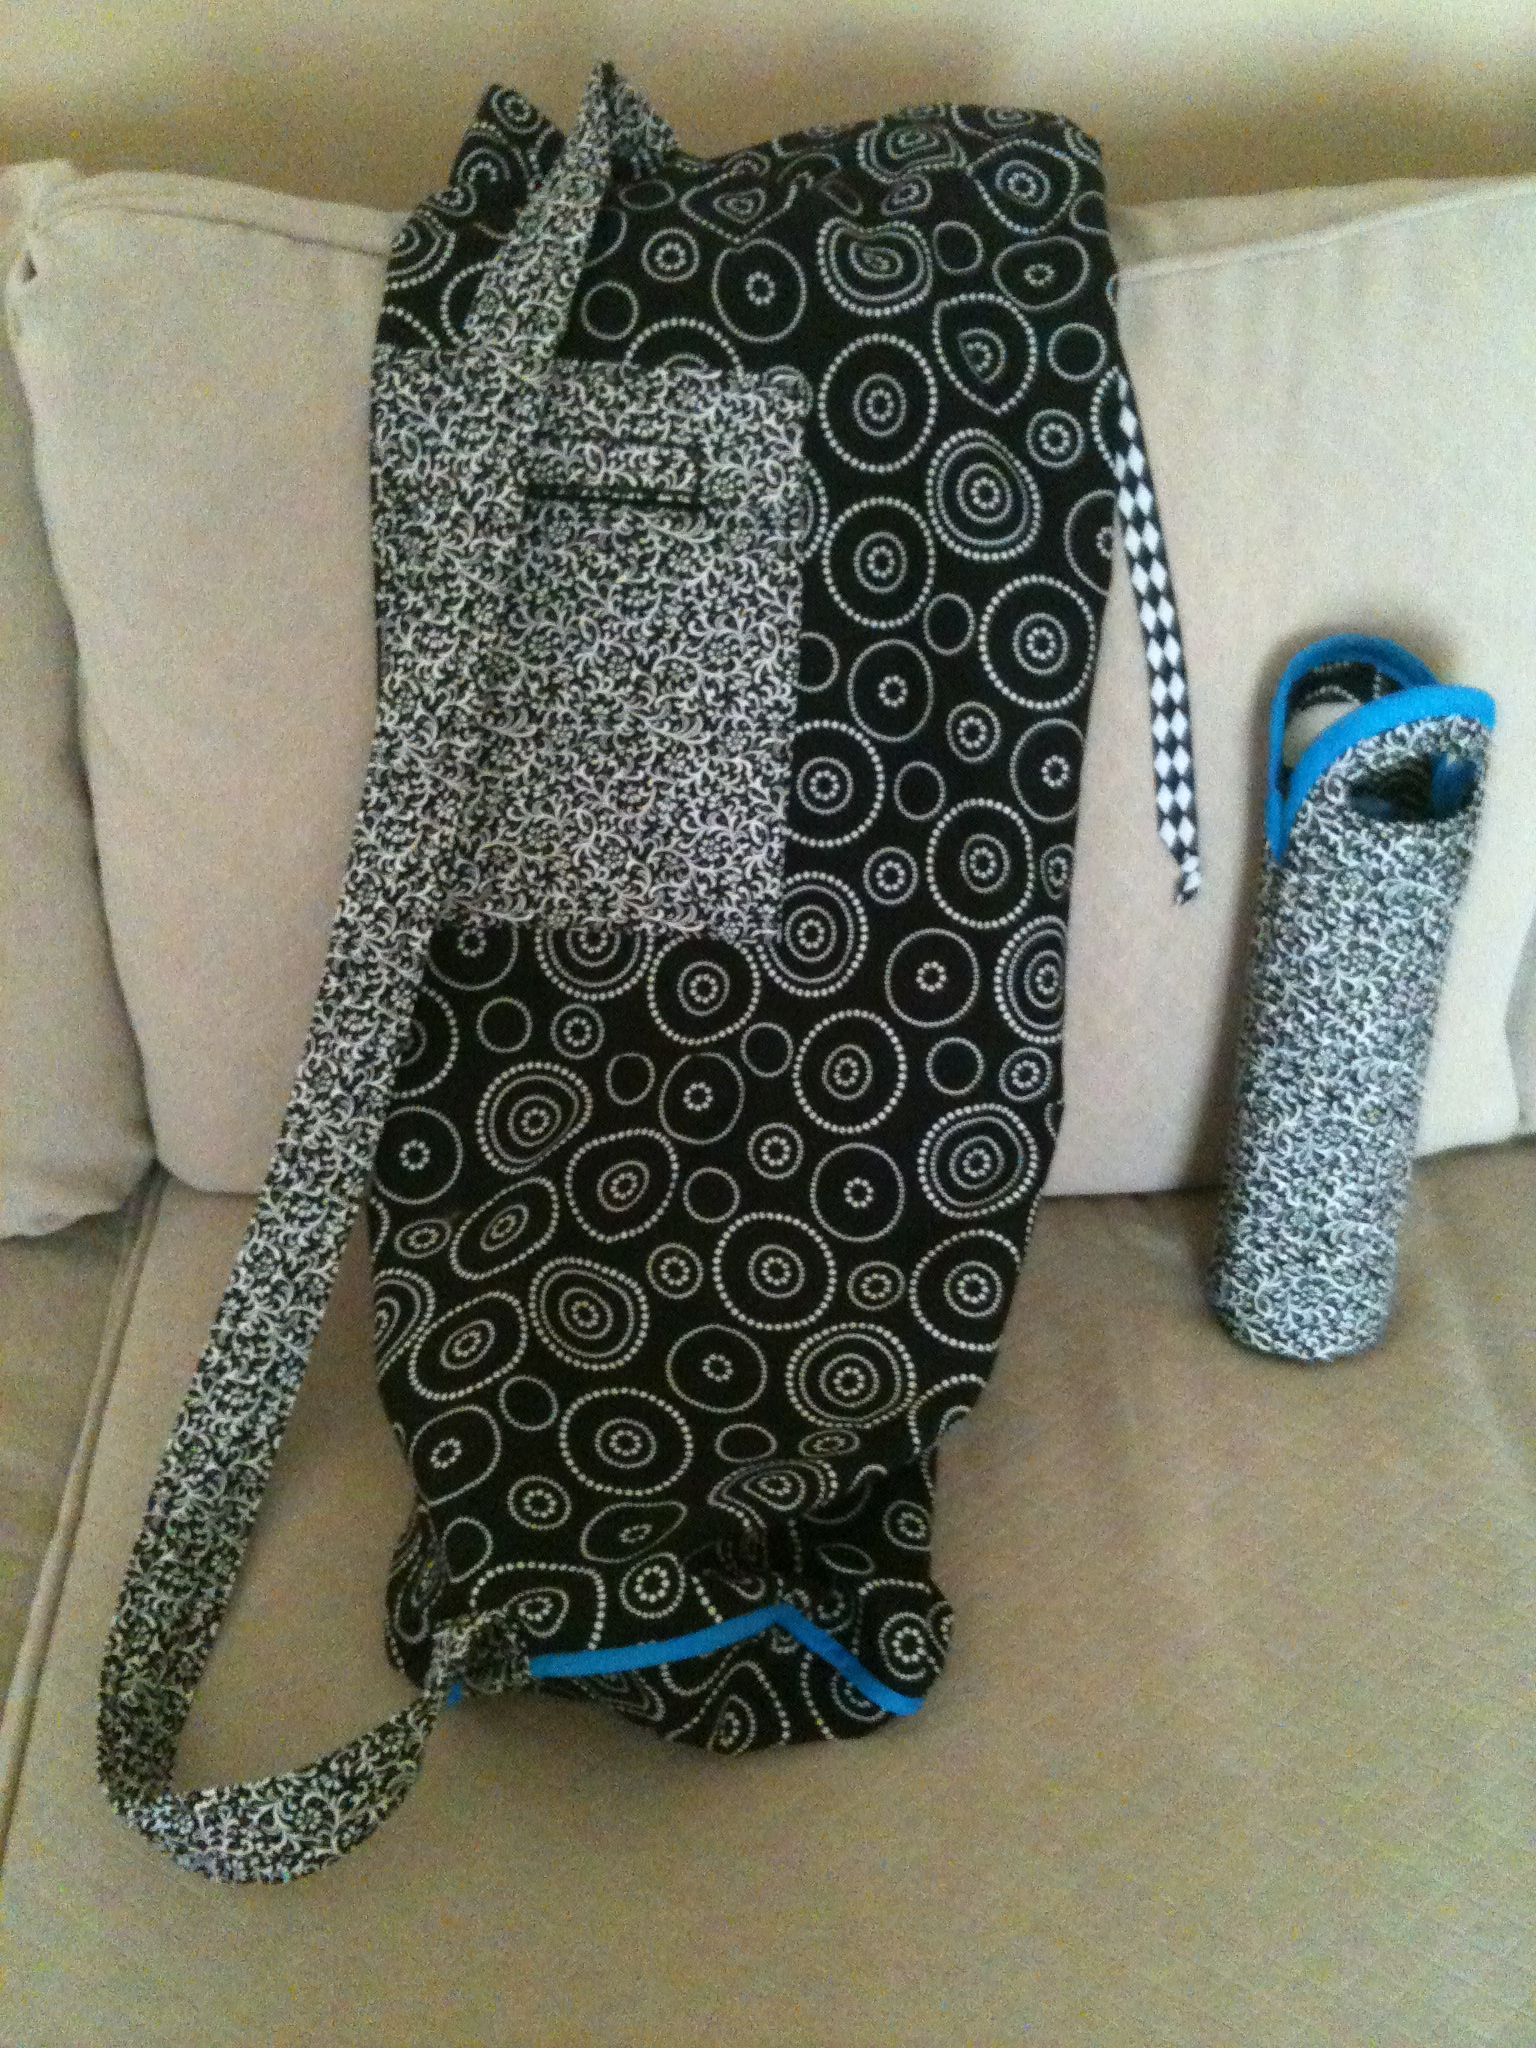 Yoga mat bag and water bottle holder made for a local fundraiser